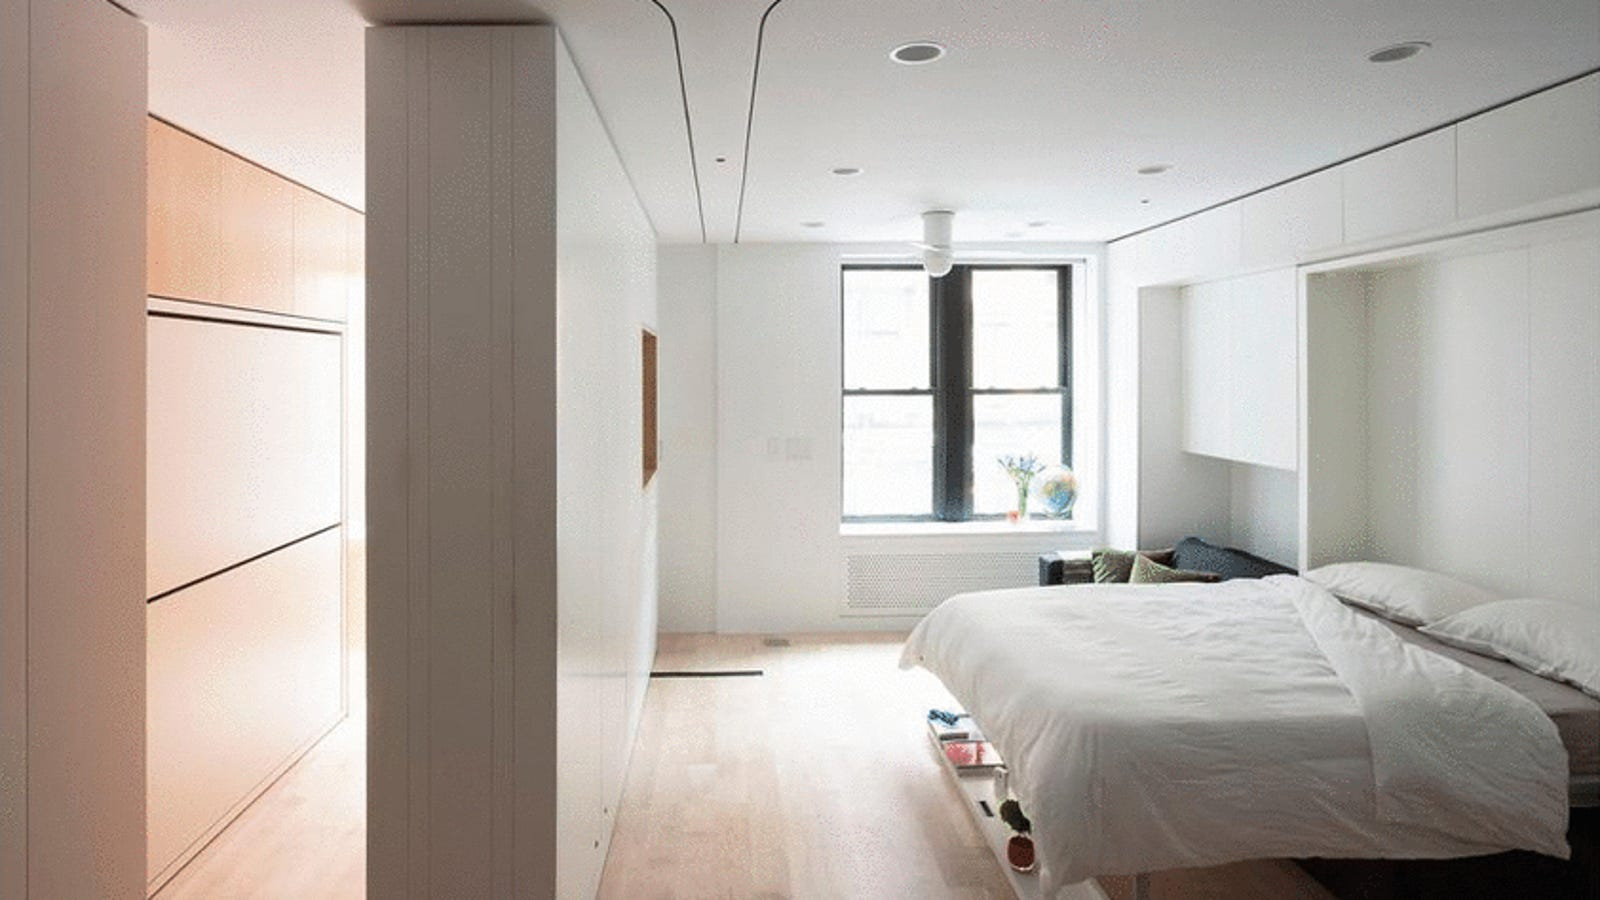 Incredible Transforming Apartments Turn Tiny Rooms Into Spacious Homes